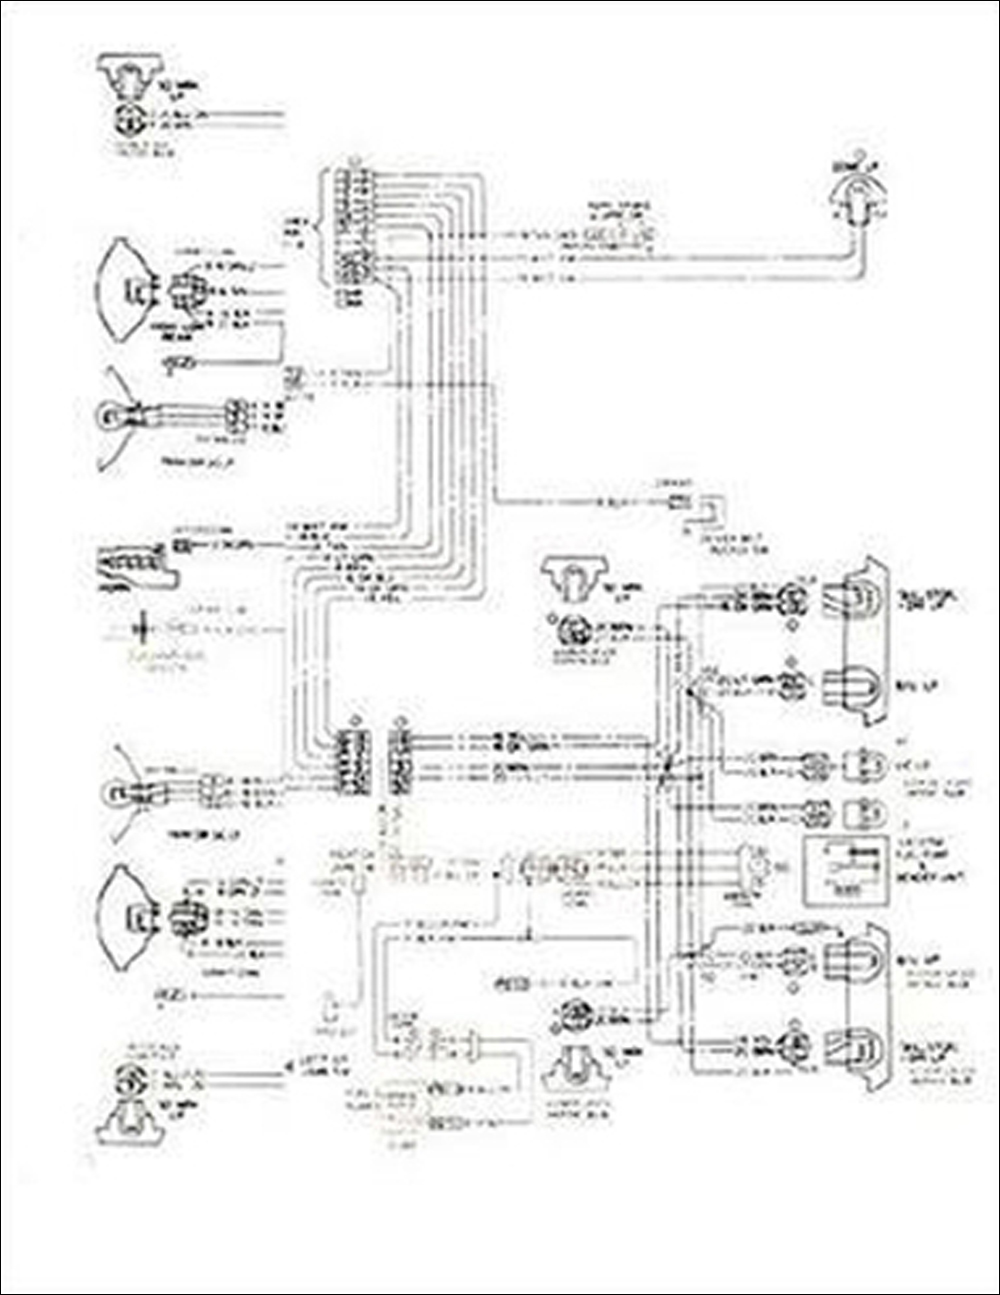 Chevy Monza Wiring Diagram Custom 1977 Chevrolet Vega And Repair Shop Manual Original Rh Faxonautoliterature Com 1979 Silverado